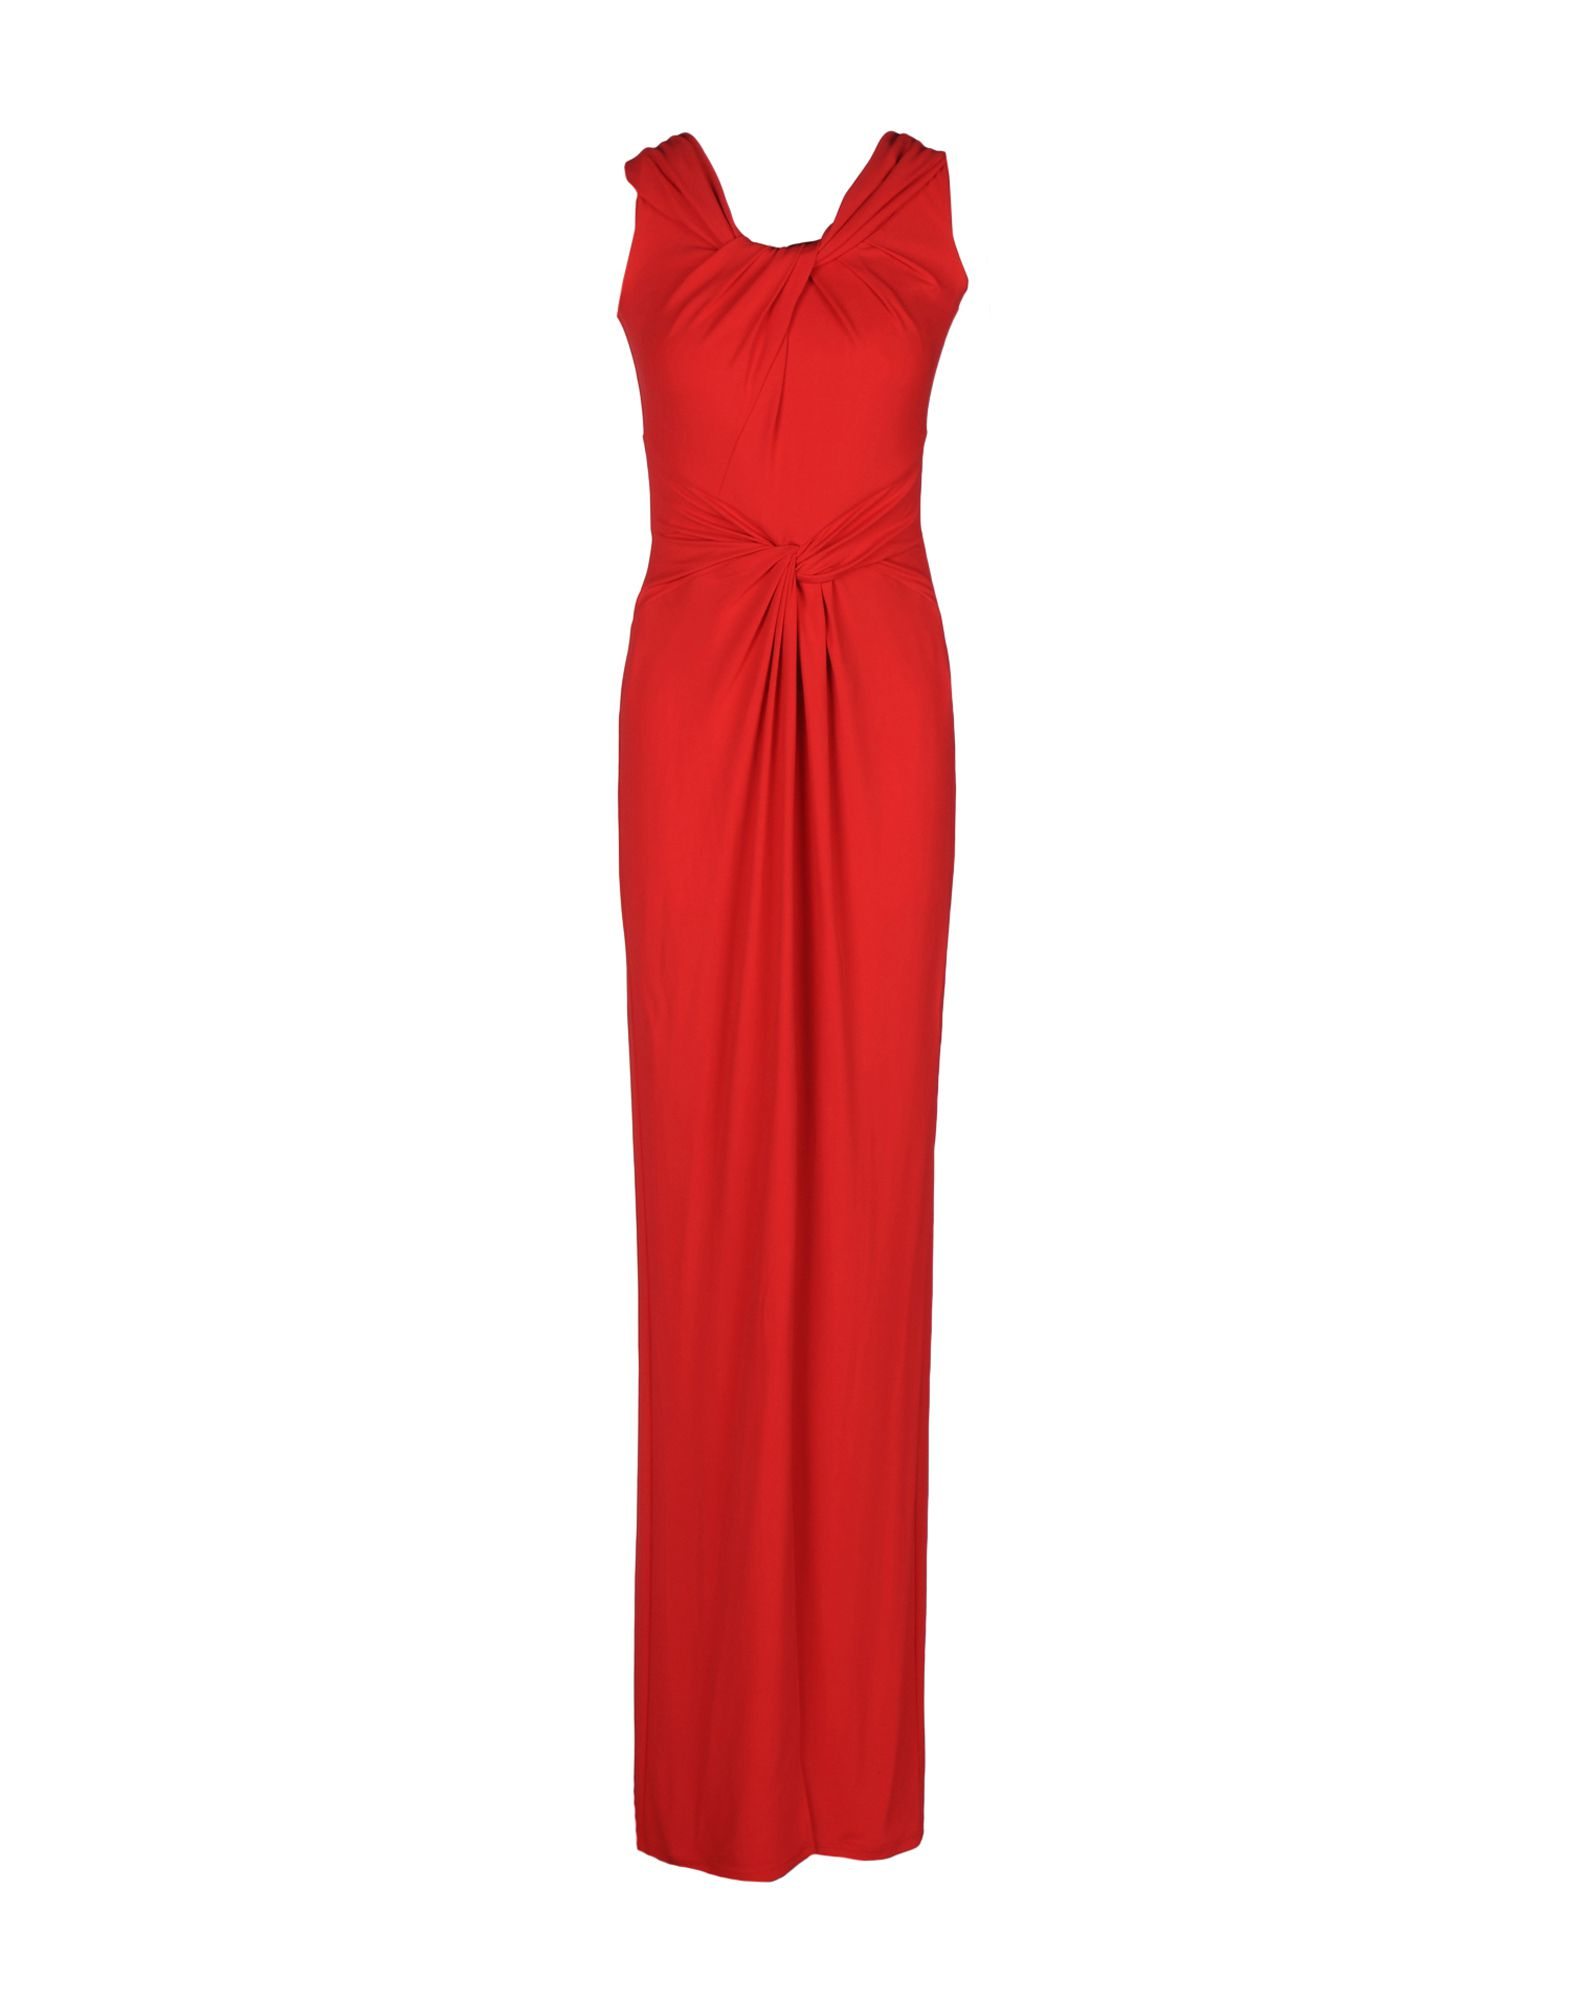 Michael kors Long Dress in Red